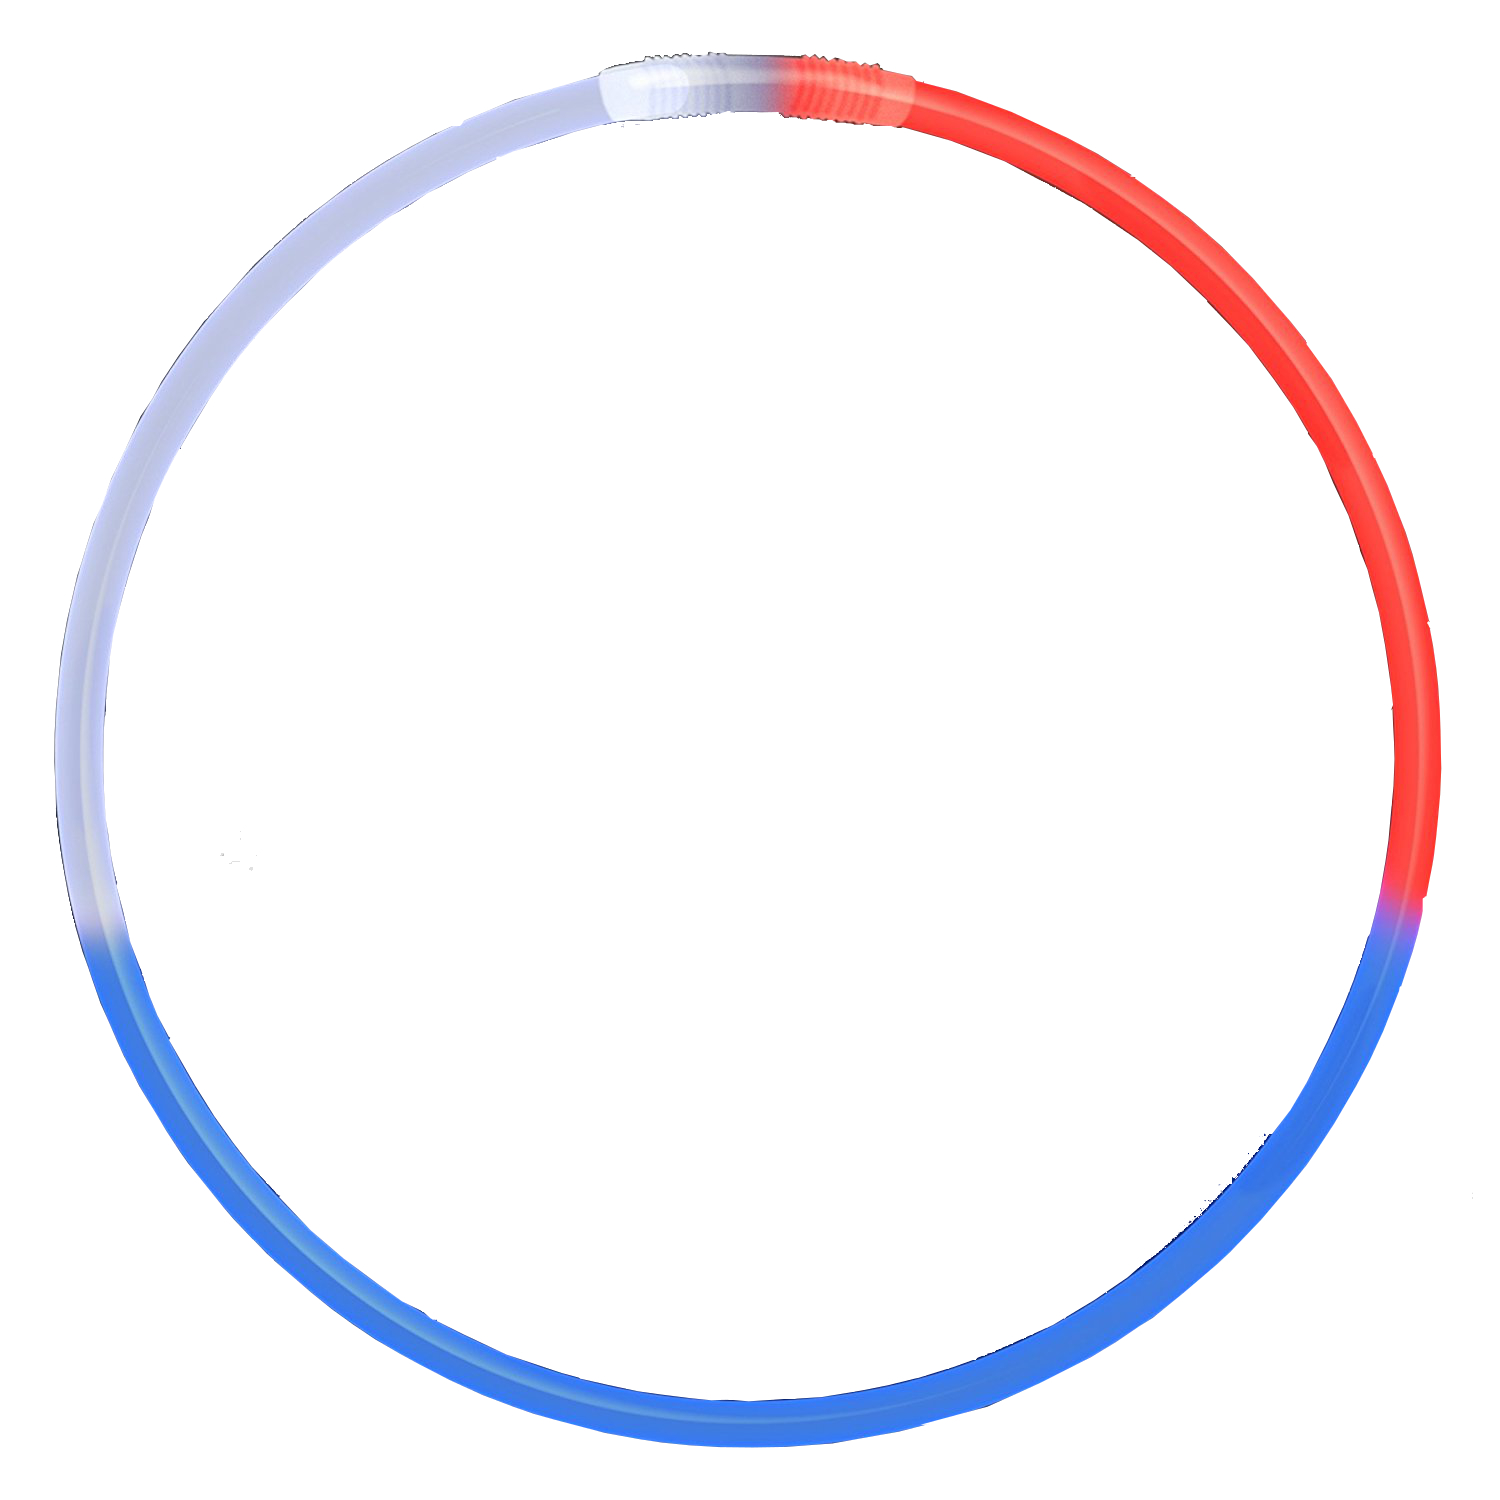 Glow Necklace Tri Color Red White and Blue Tube of Fifty 4th of July